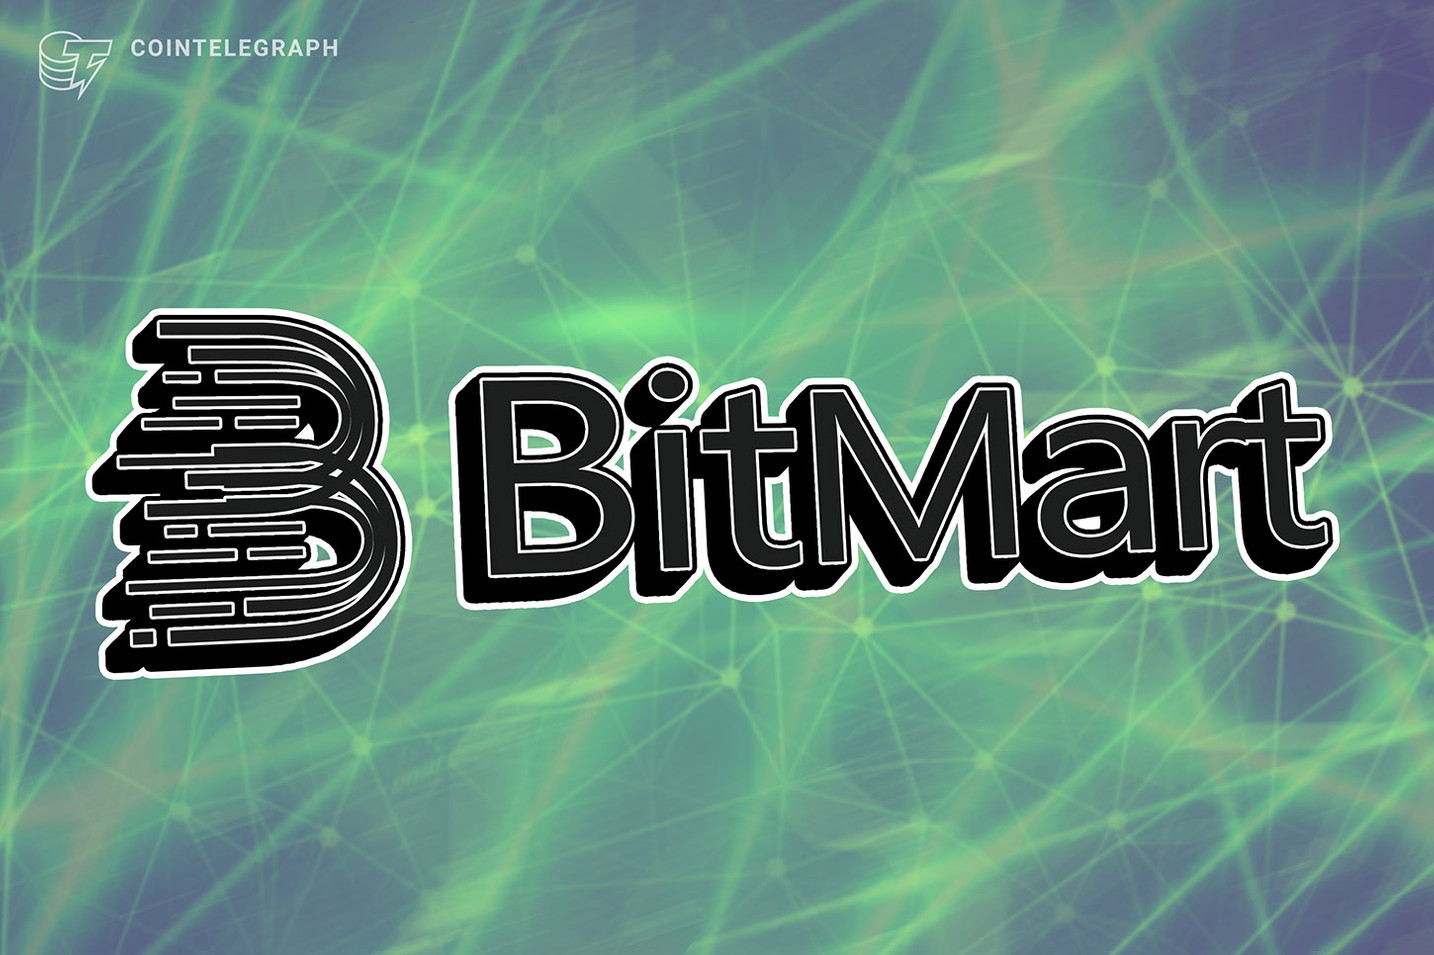 BMX price surged 317%, BitMart takes the lead in bull market